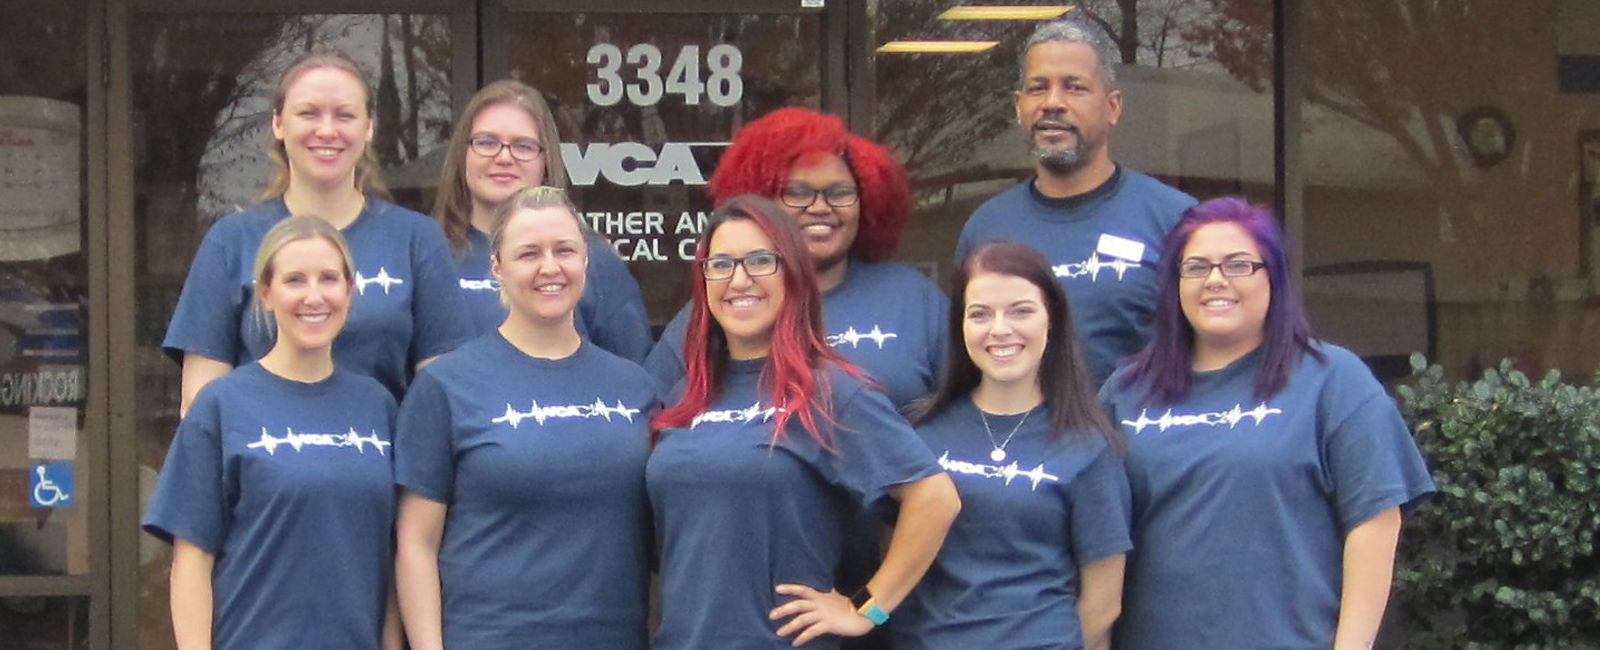 Team Picture of VCA Mather Animal Medical Center